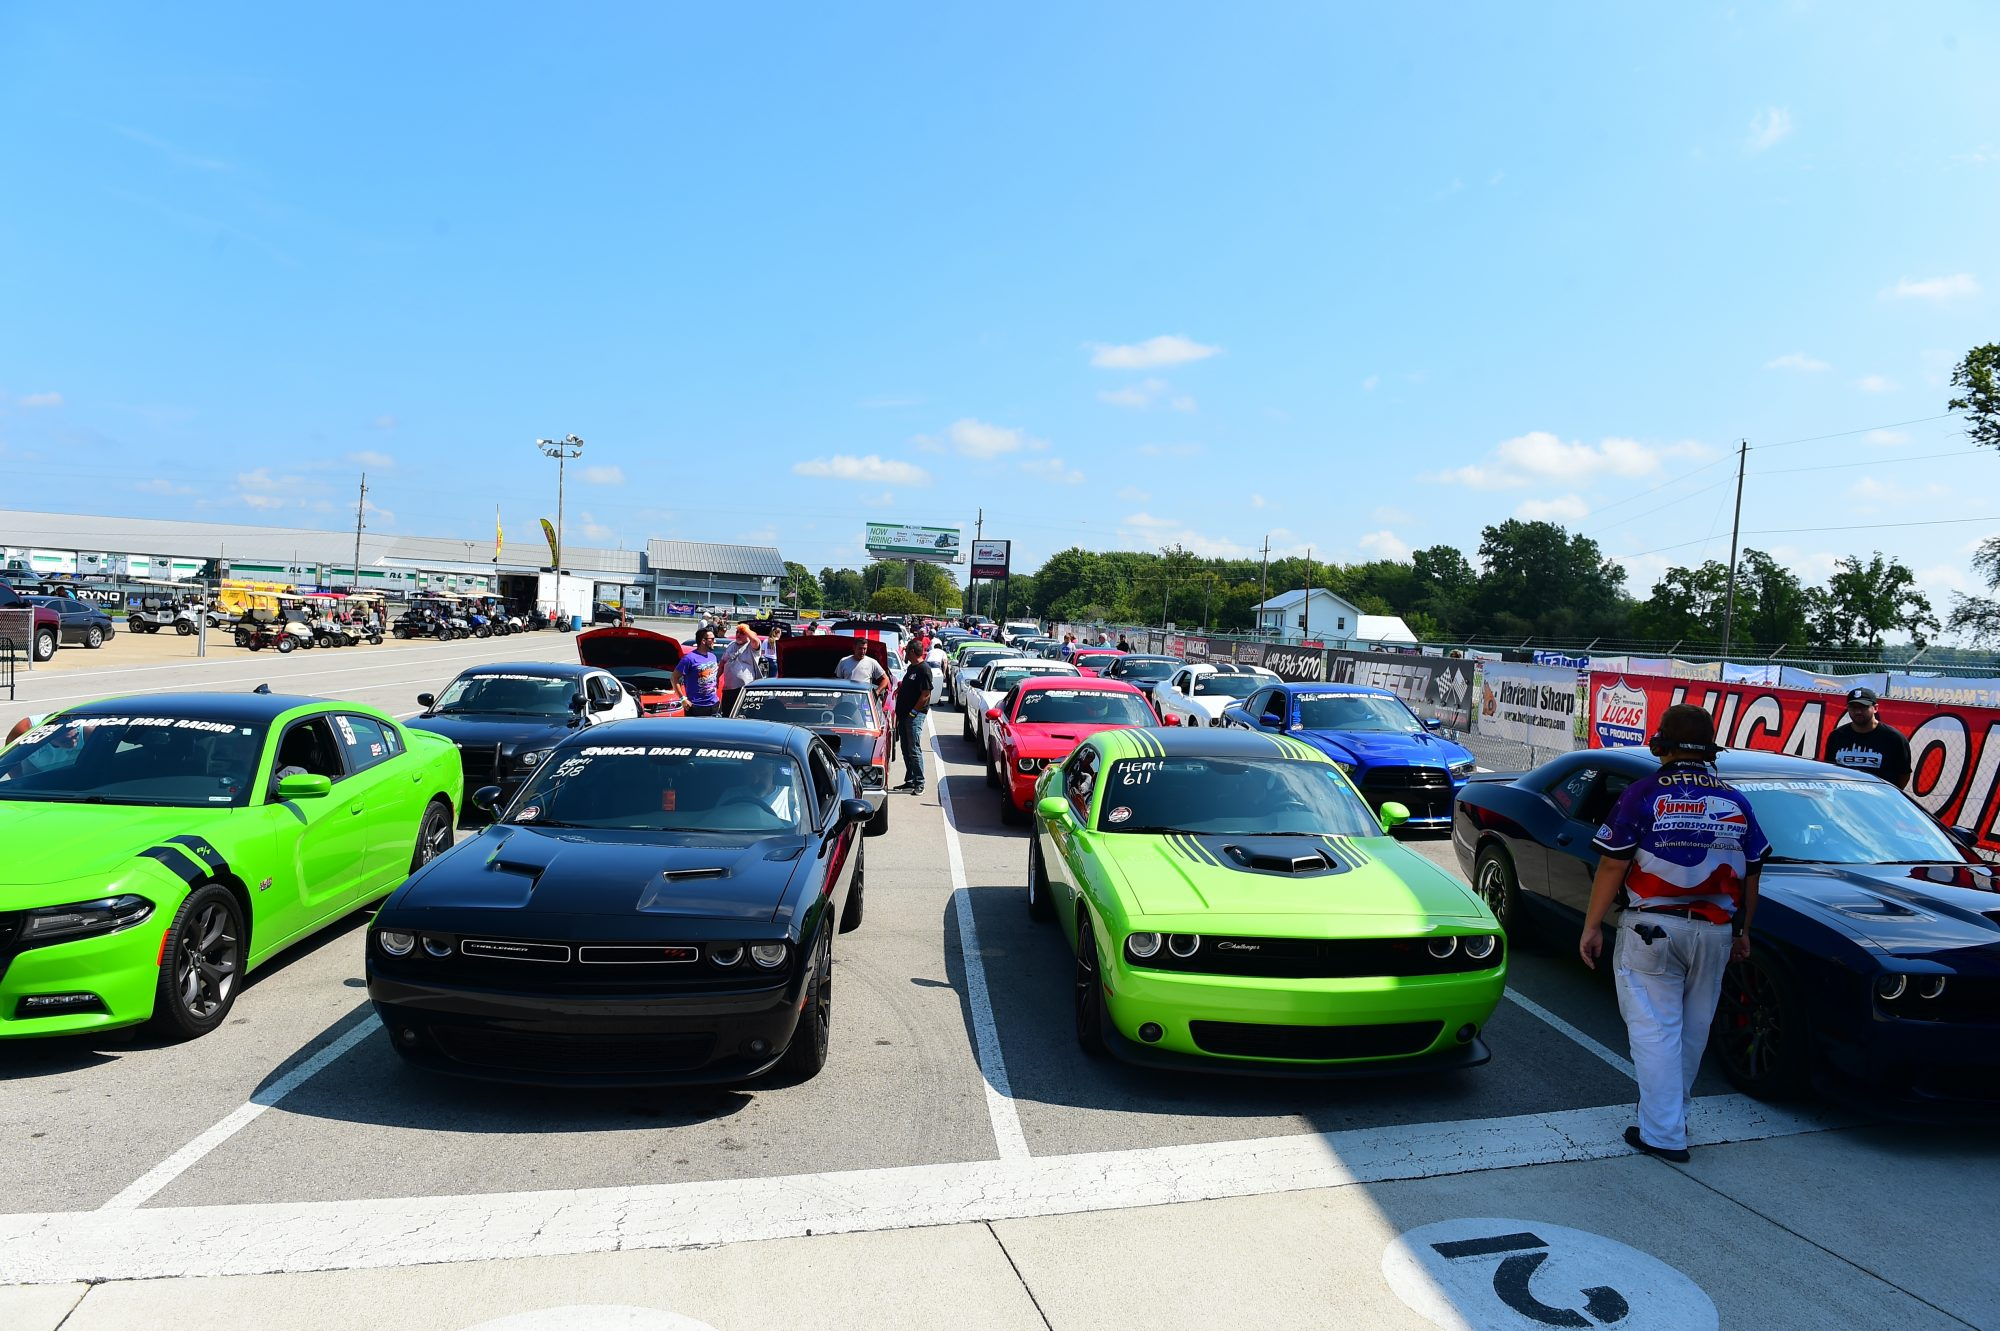 Row of cars getting ready to drag race